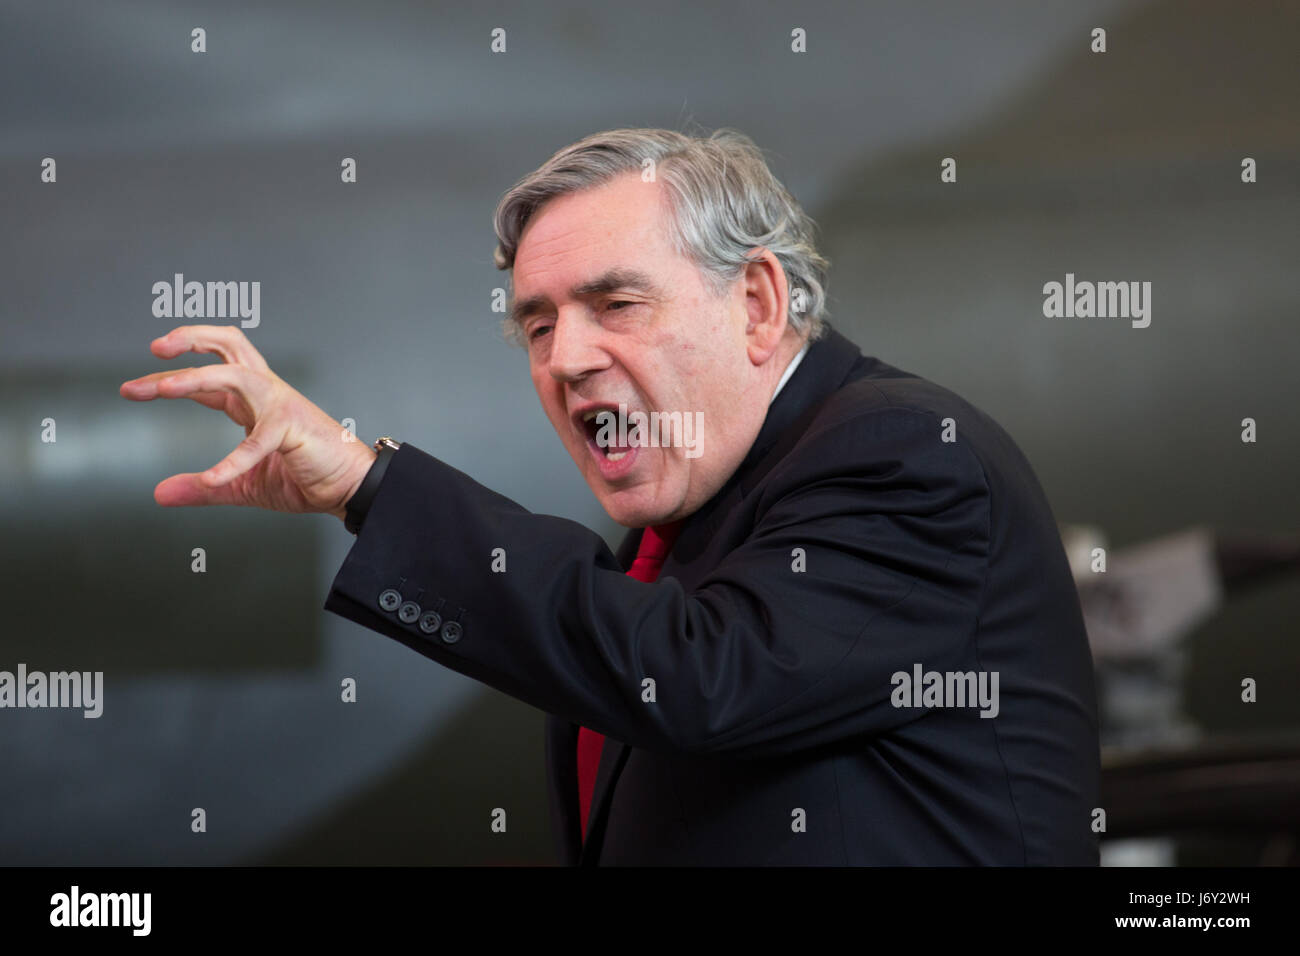 Former Labour Prime Minister Gordon Brown giving a speech in Coventry during the Labour Election campaign - Stock Image